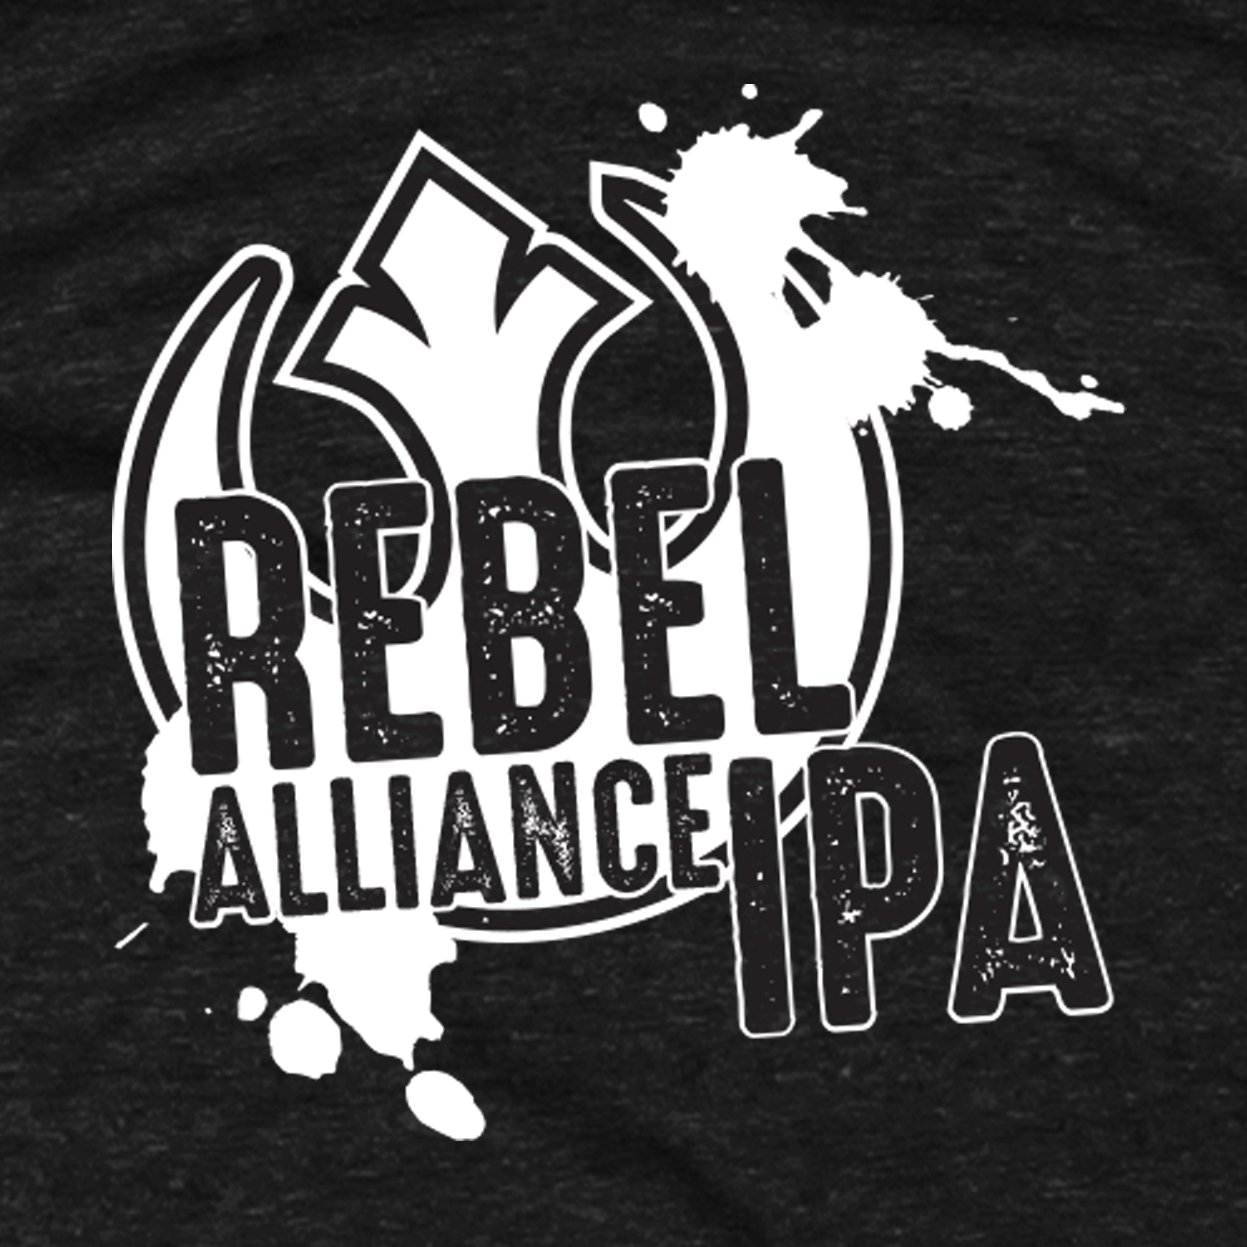 Rebel Alliance IPA t-shirt